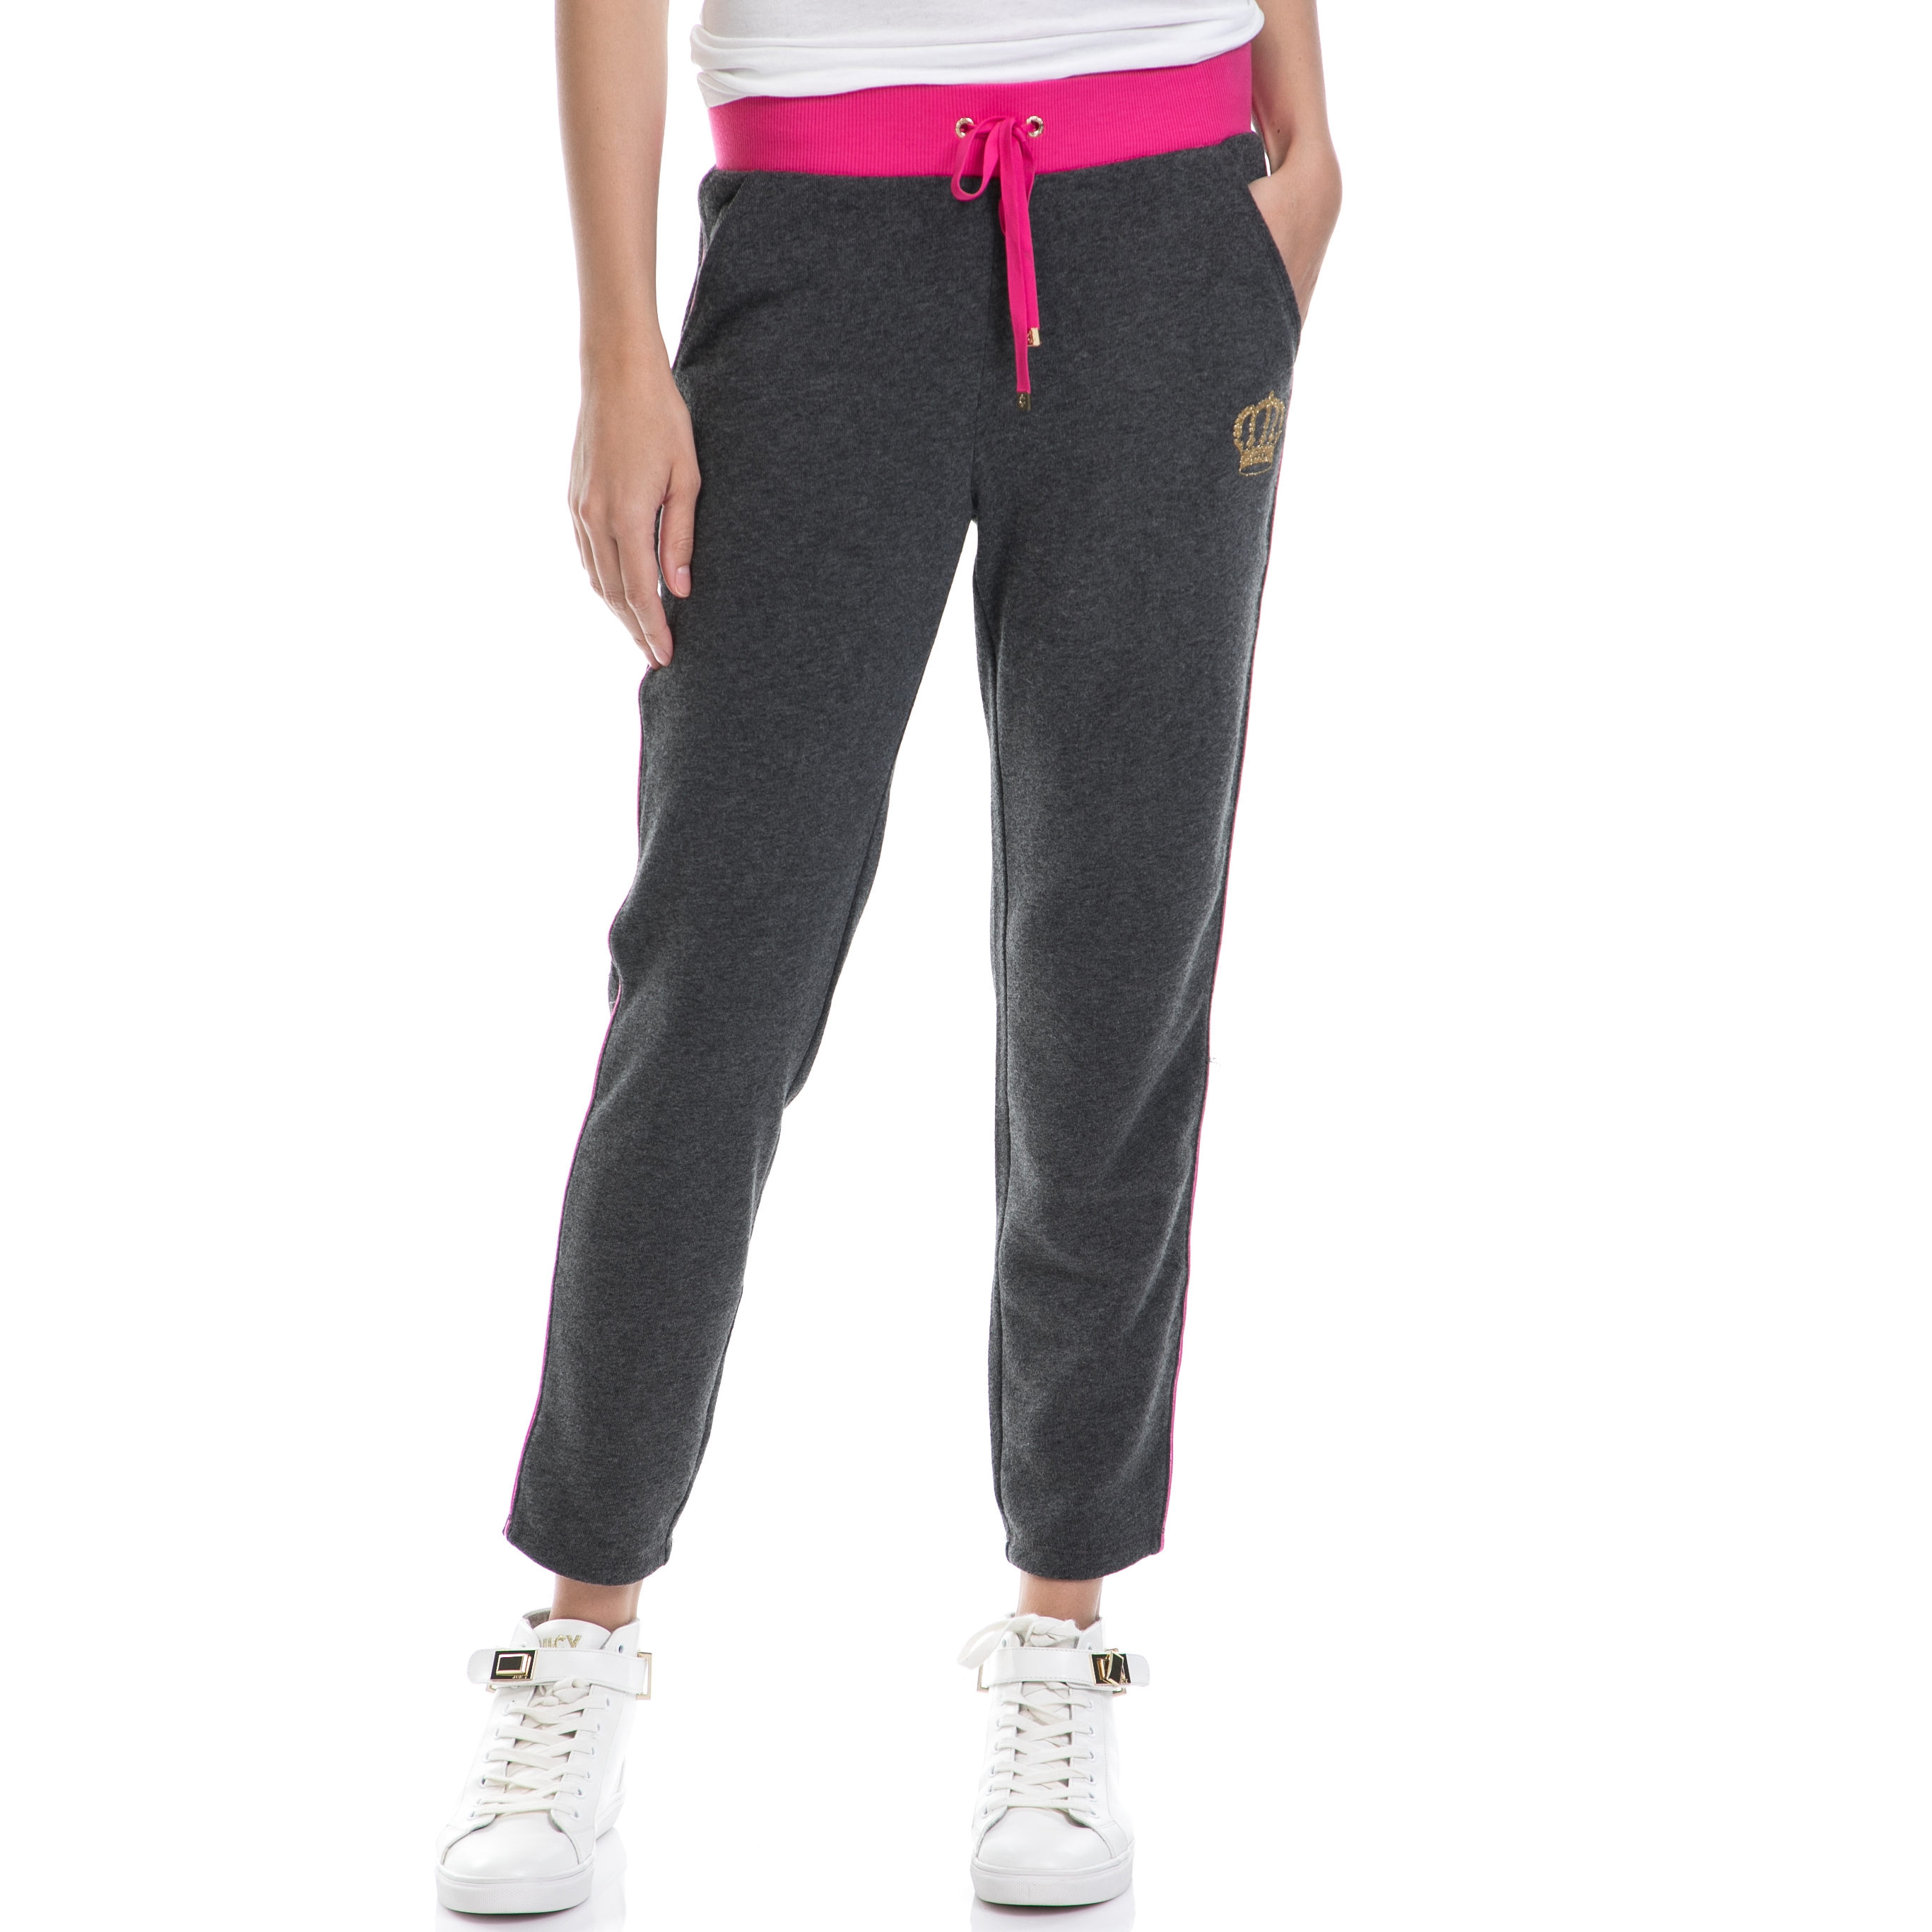 JUICY COUTURE – Γυναικείο παντελόνι JUICY COUTURE γκρι